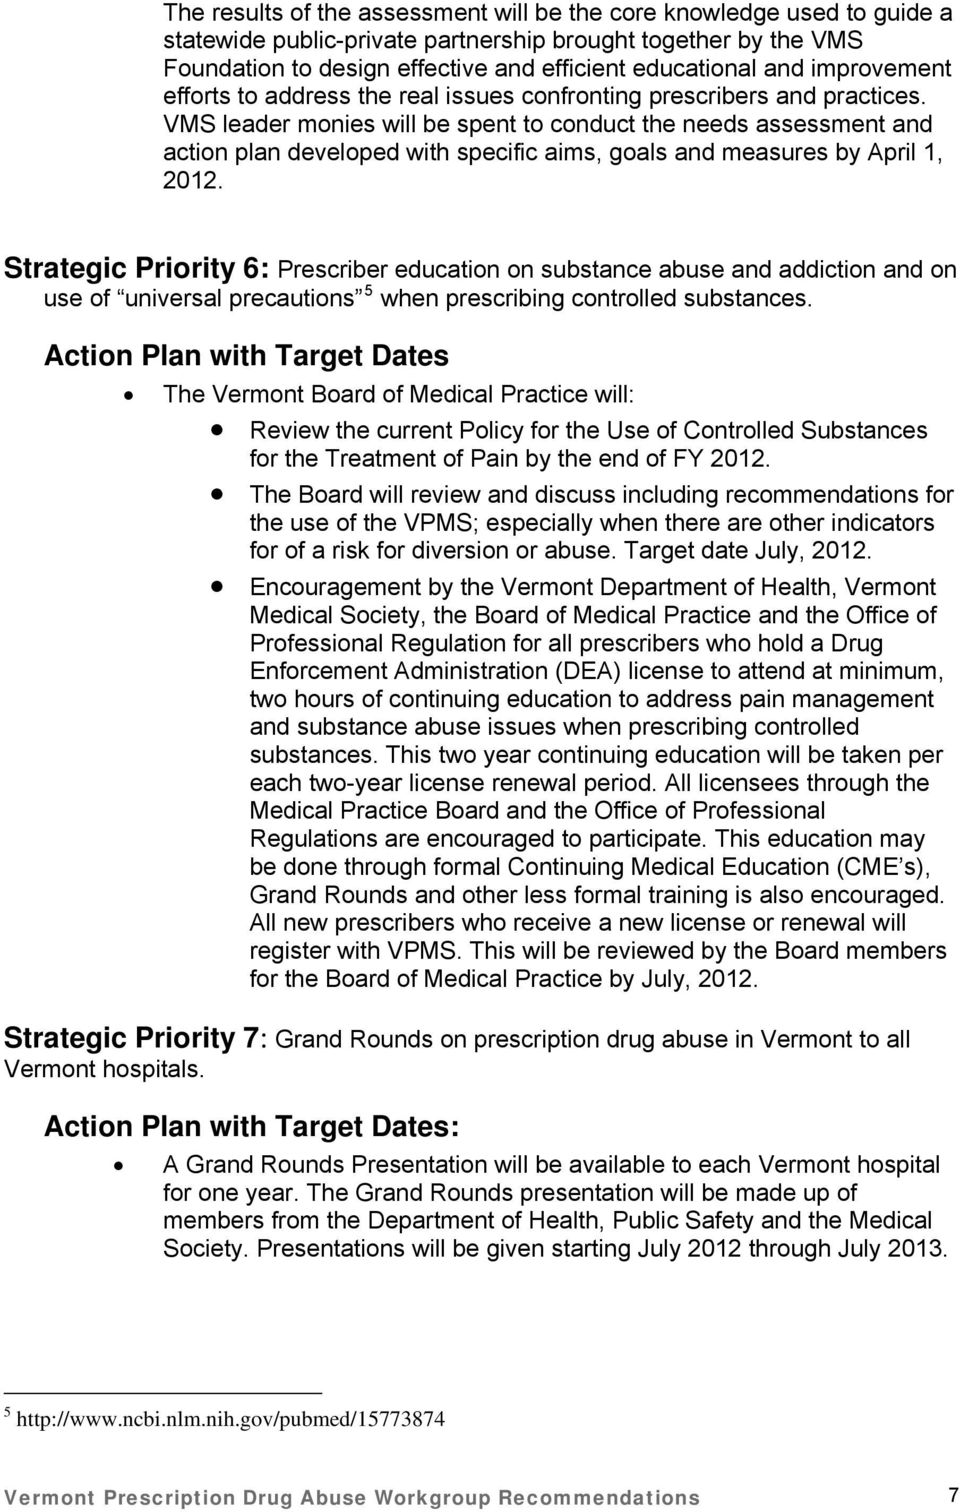 VMS leader monies will be spent to conduct the needs assessment and action plan developed with specific aims, goals and measures by April 1, 2012.